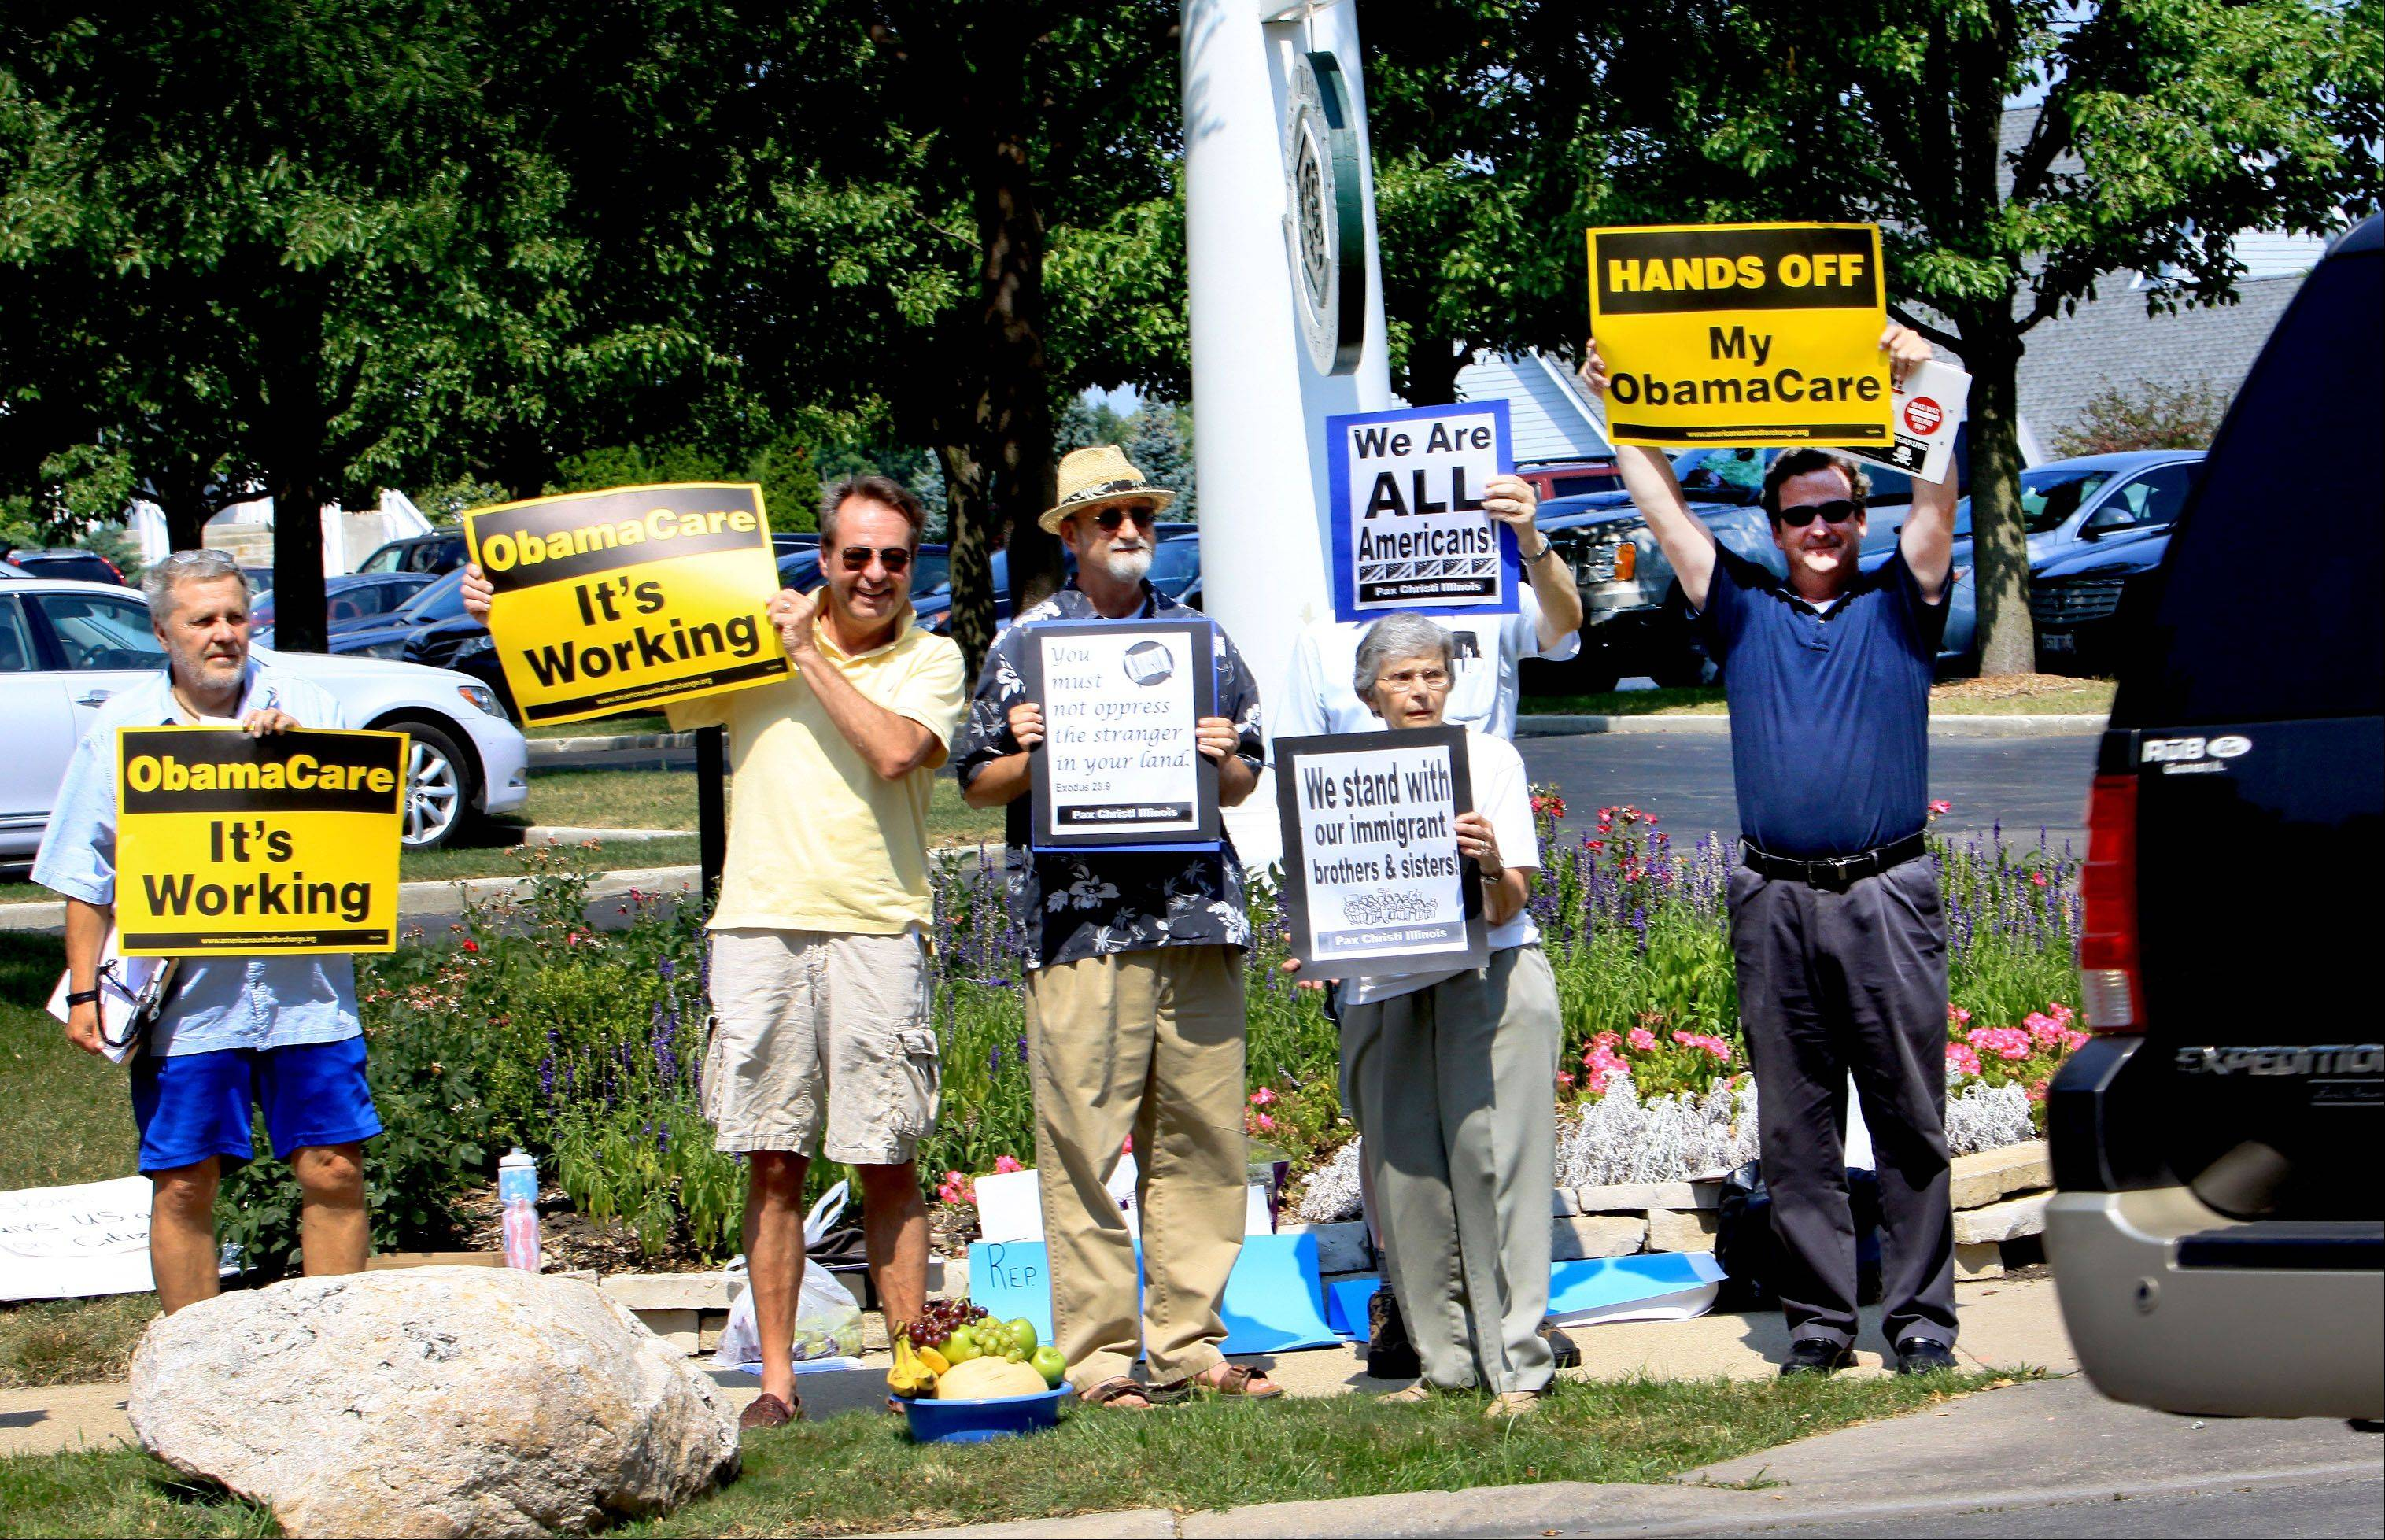 Groups gather to demonstrate outside Cress Creek Country Club in Naperville on Wednesday, where U.S. Rep. Peter Roskam was making an appearance.